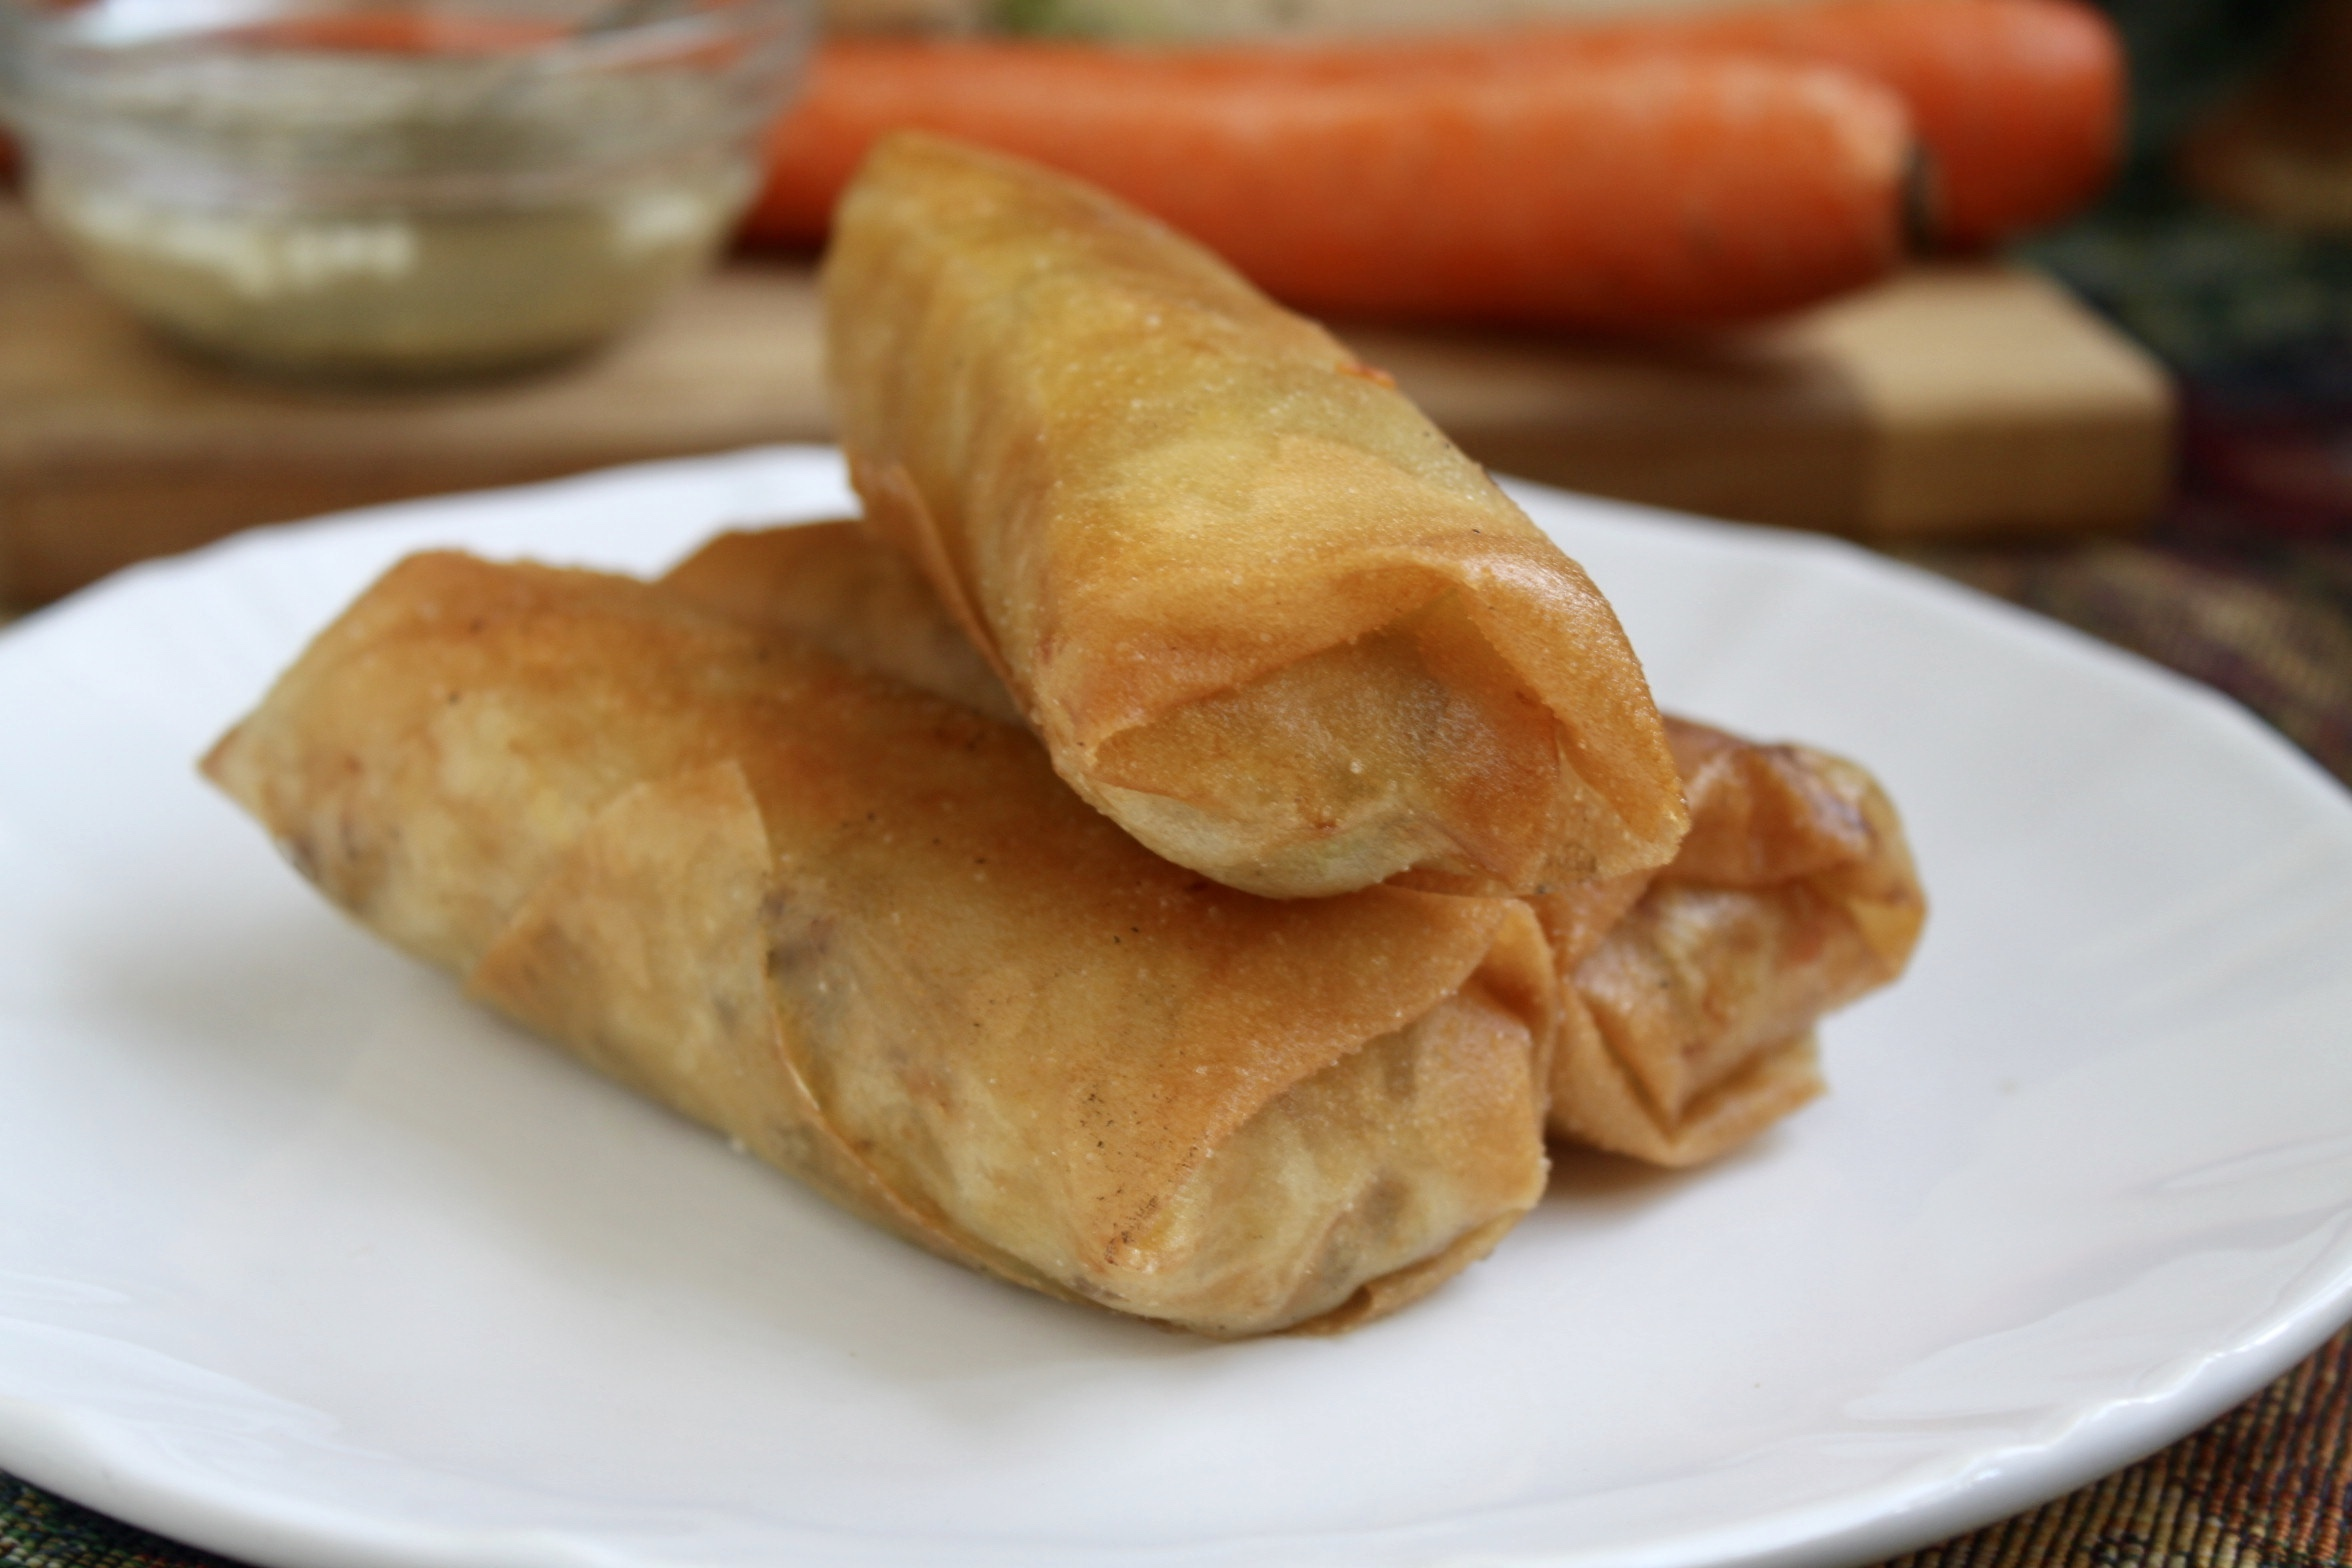 Filipino Lumpia with a Garlic and Black Pepper Vinegar Sauce